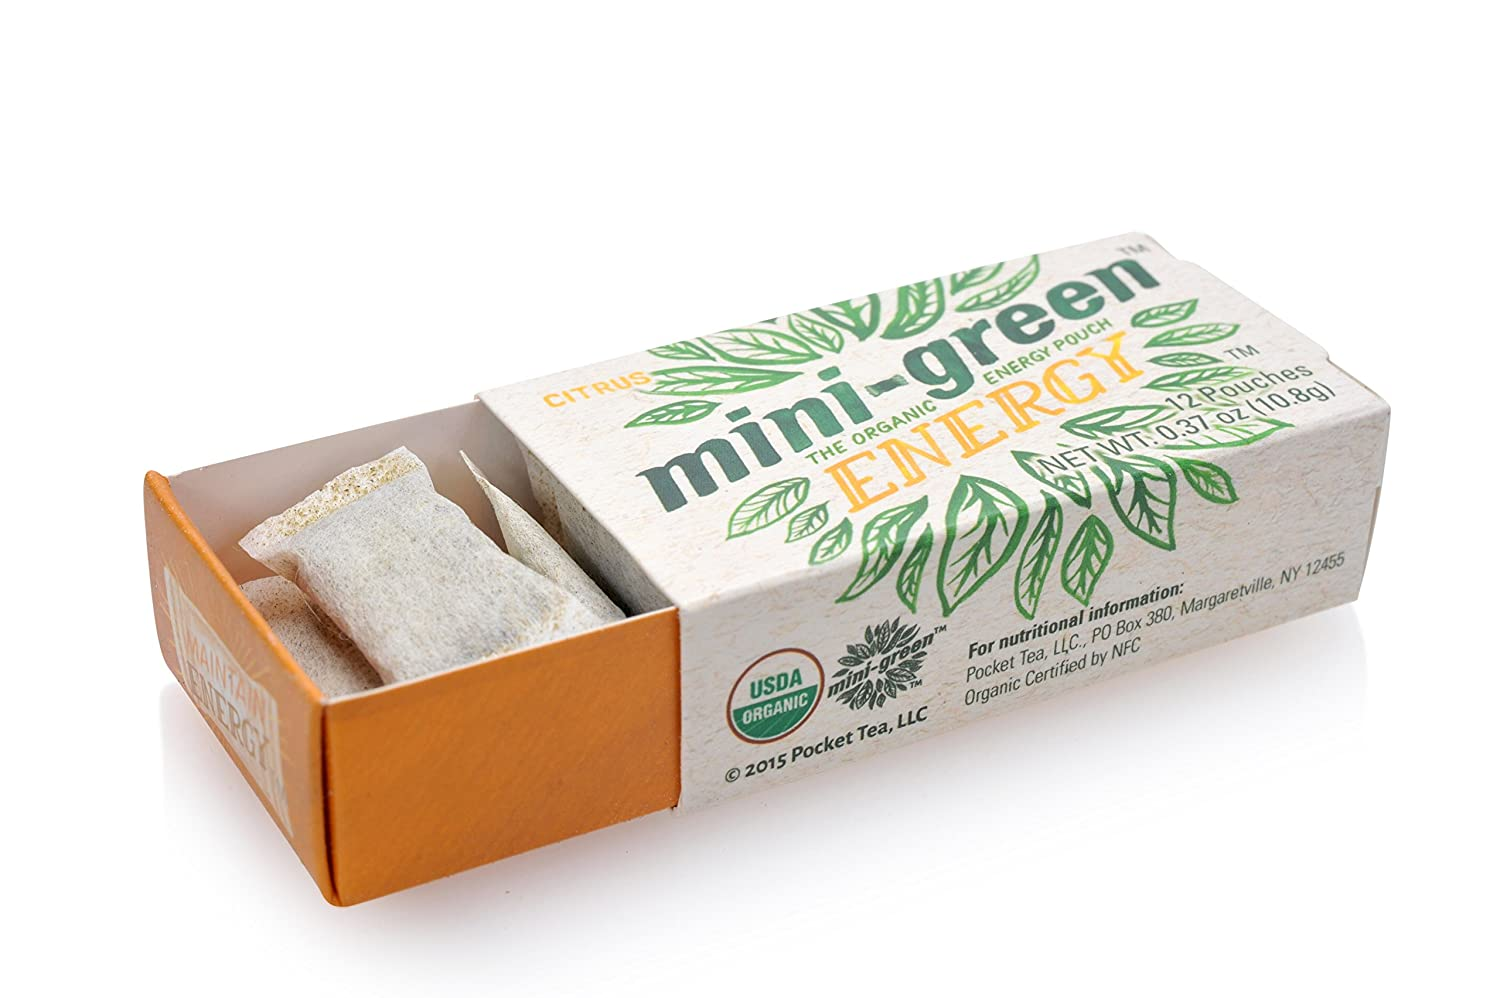 MINI-GREEN ENERGY POUCH (3-Pack/Spearmint) - The Organic Energy Product That You Can Use Anytime, Anywhere Without The Jitters And Crashing Of Artificial Energy Products (choose from 5 GREAT FLAVORS)